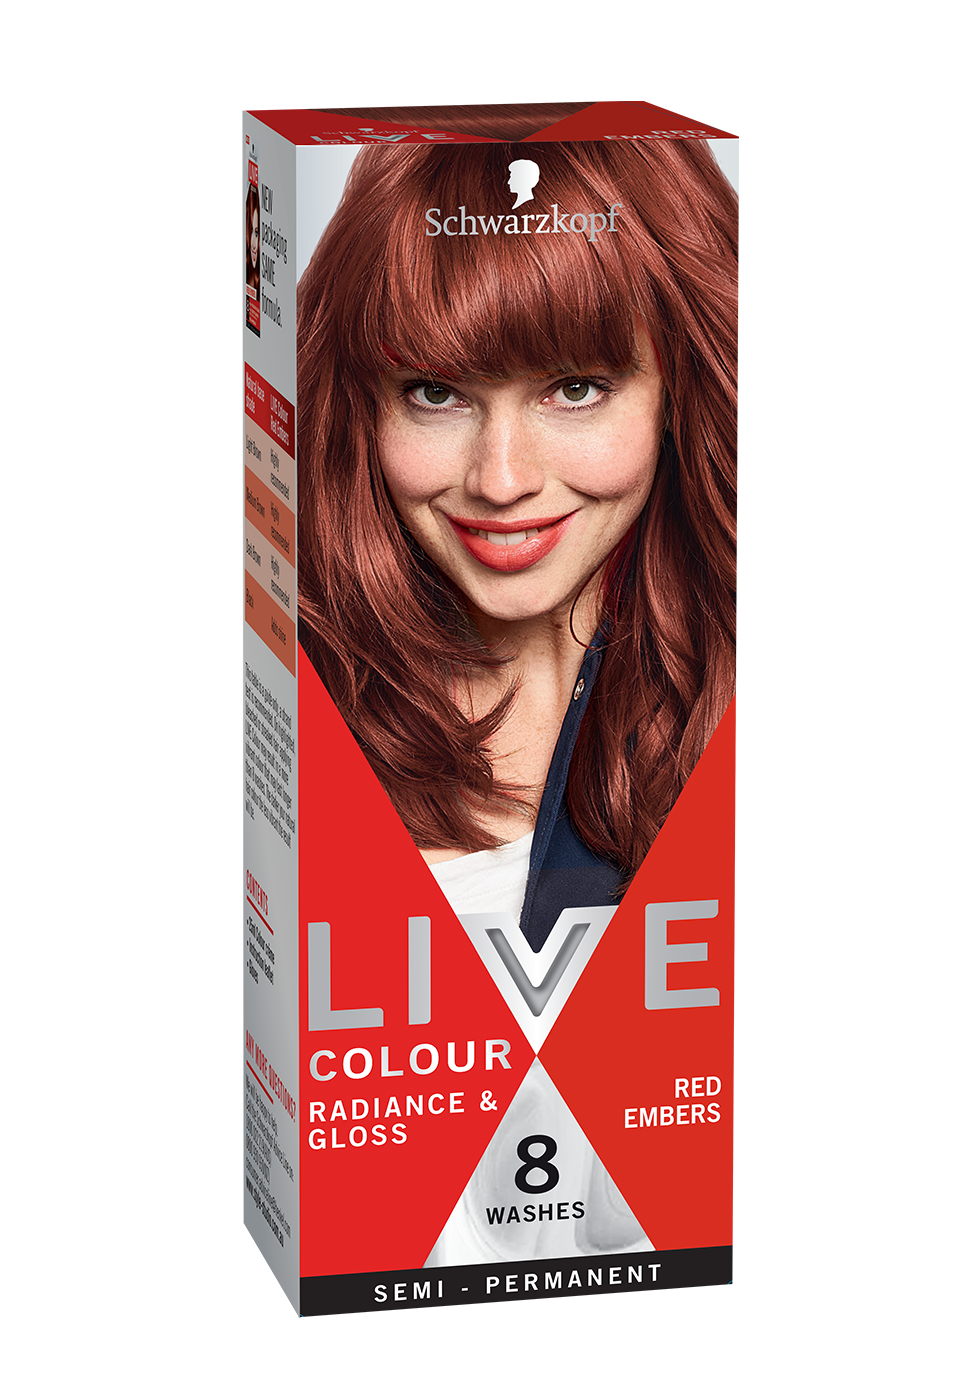 CareLiveColourRedEmbers